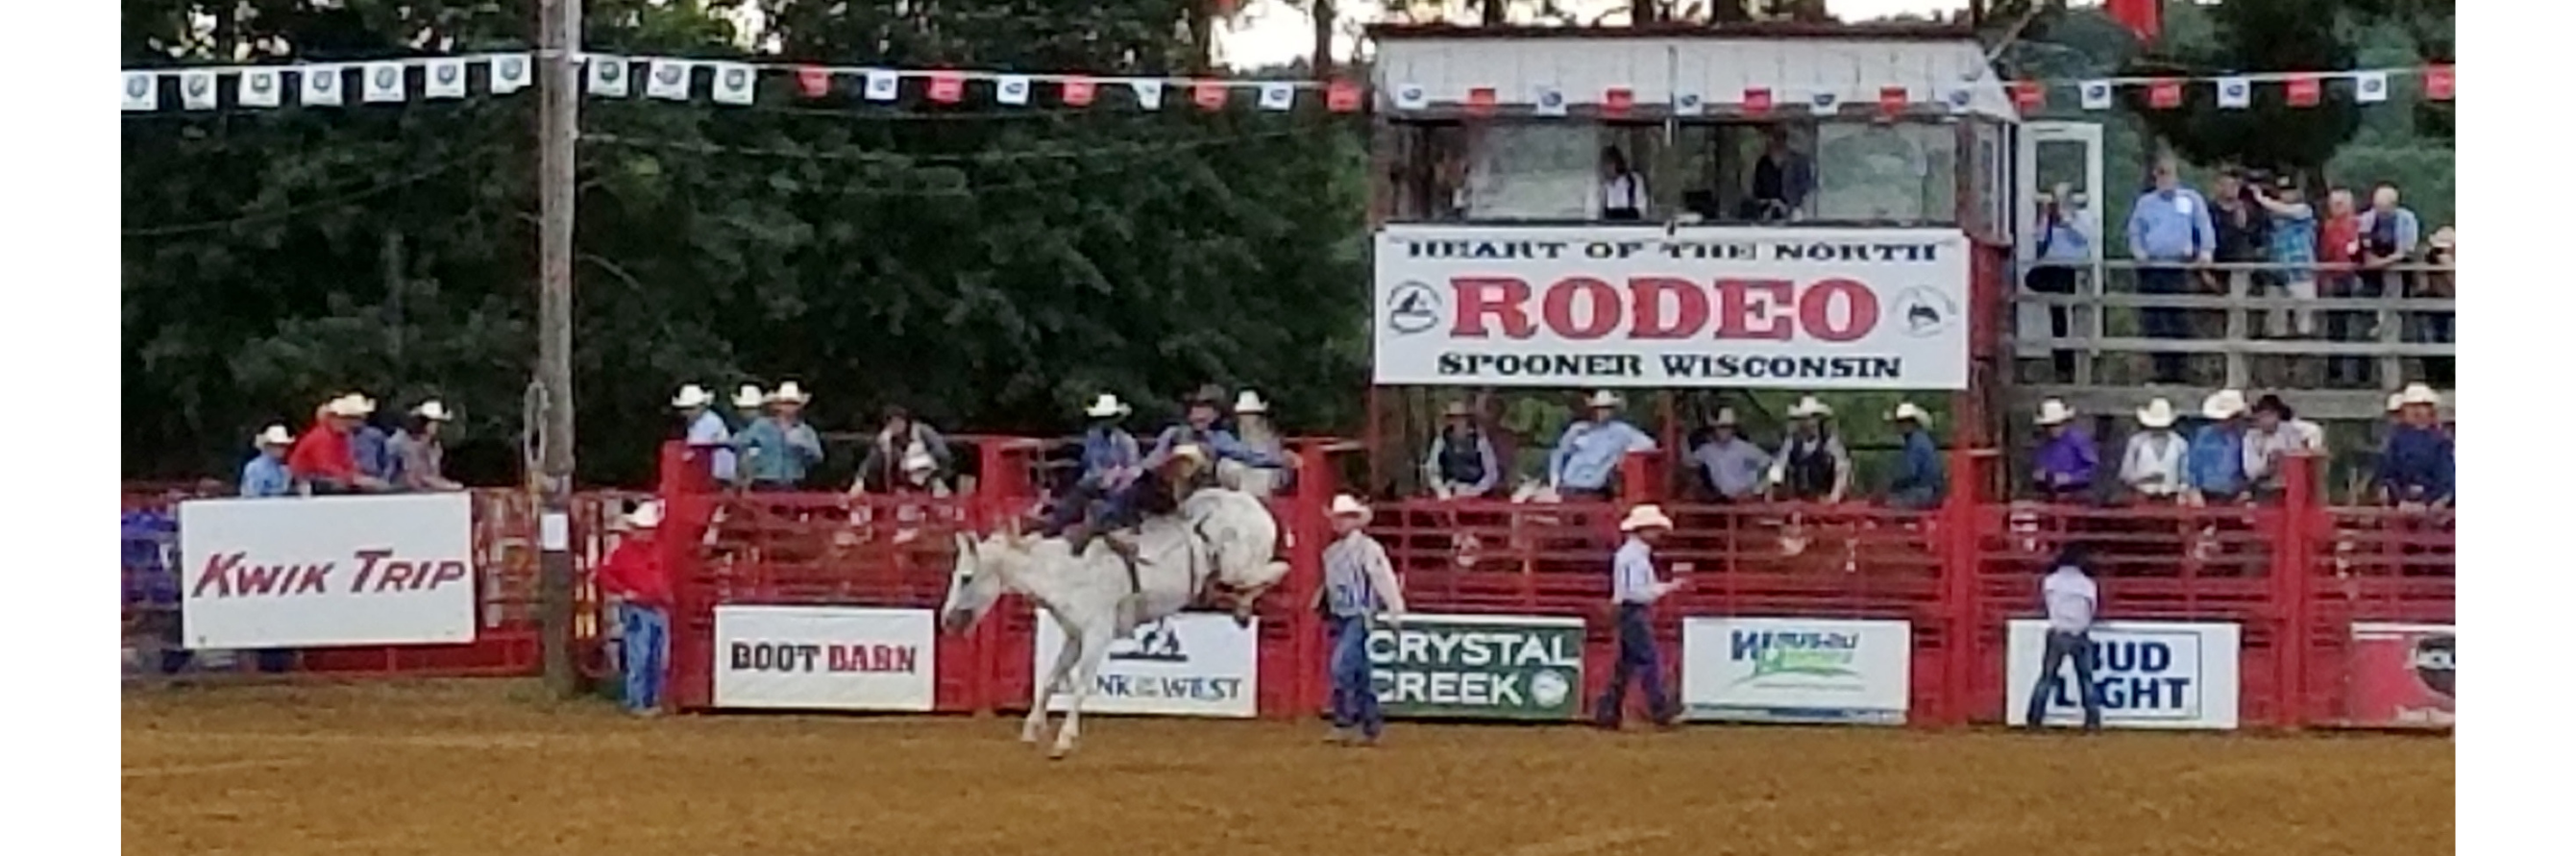 what to do in Wisconsin spooner rodeo